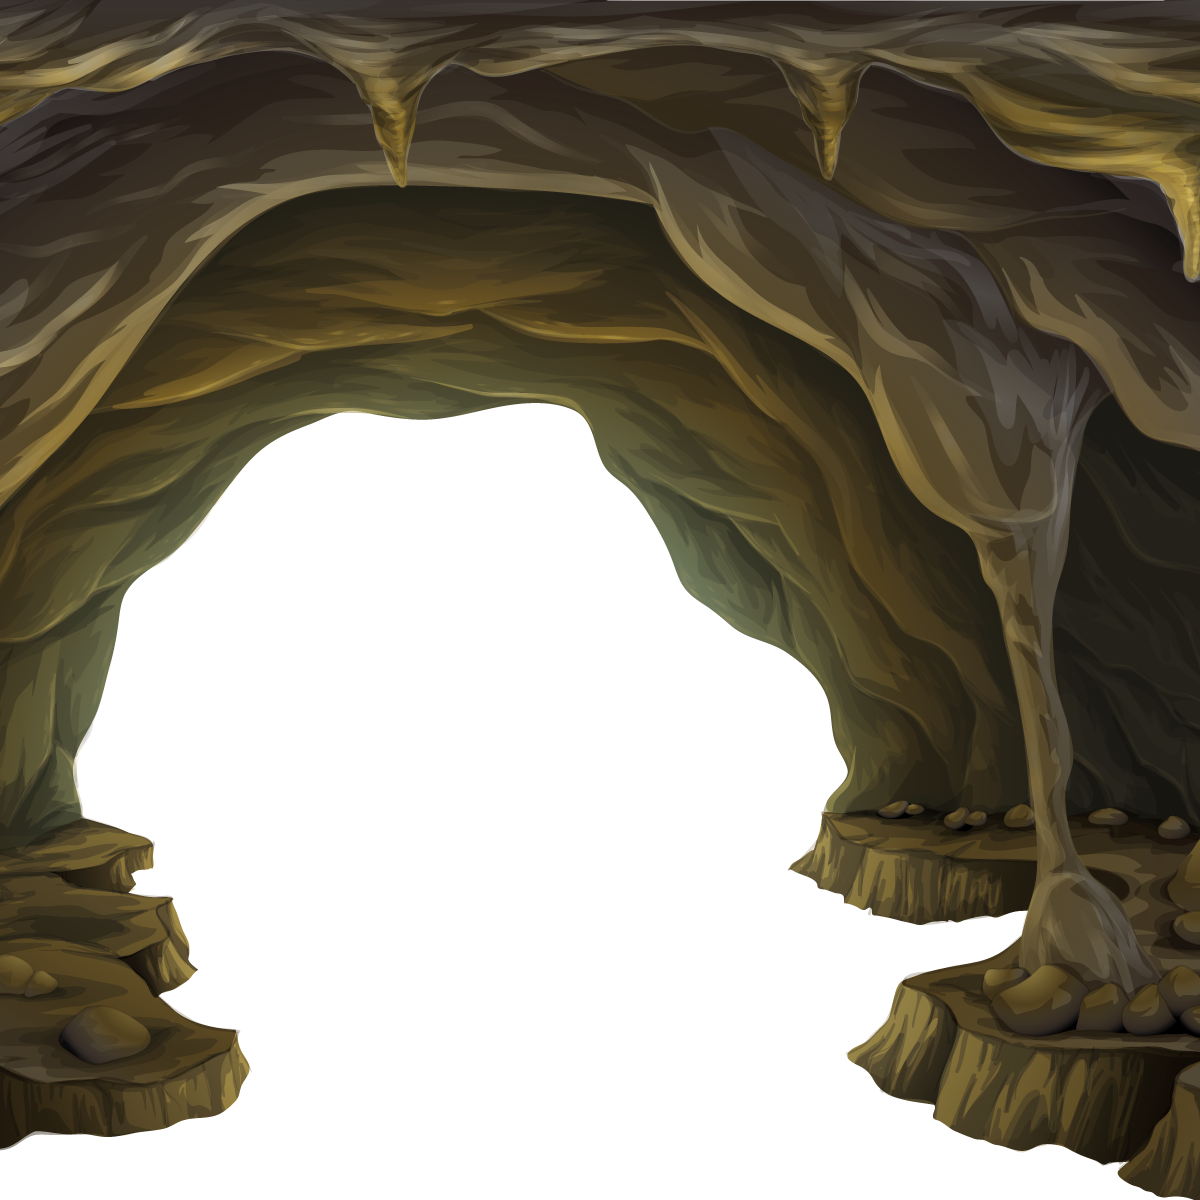 Layers Shutterstock Cave Formation PNG File HD PNG Image